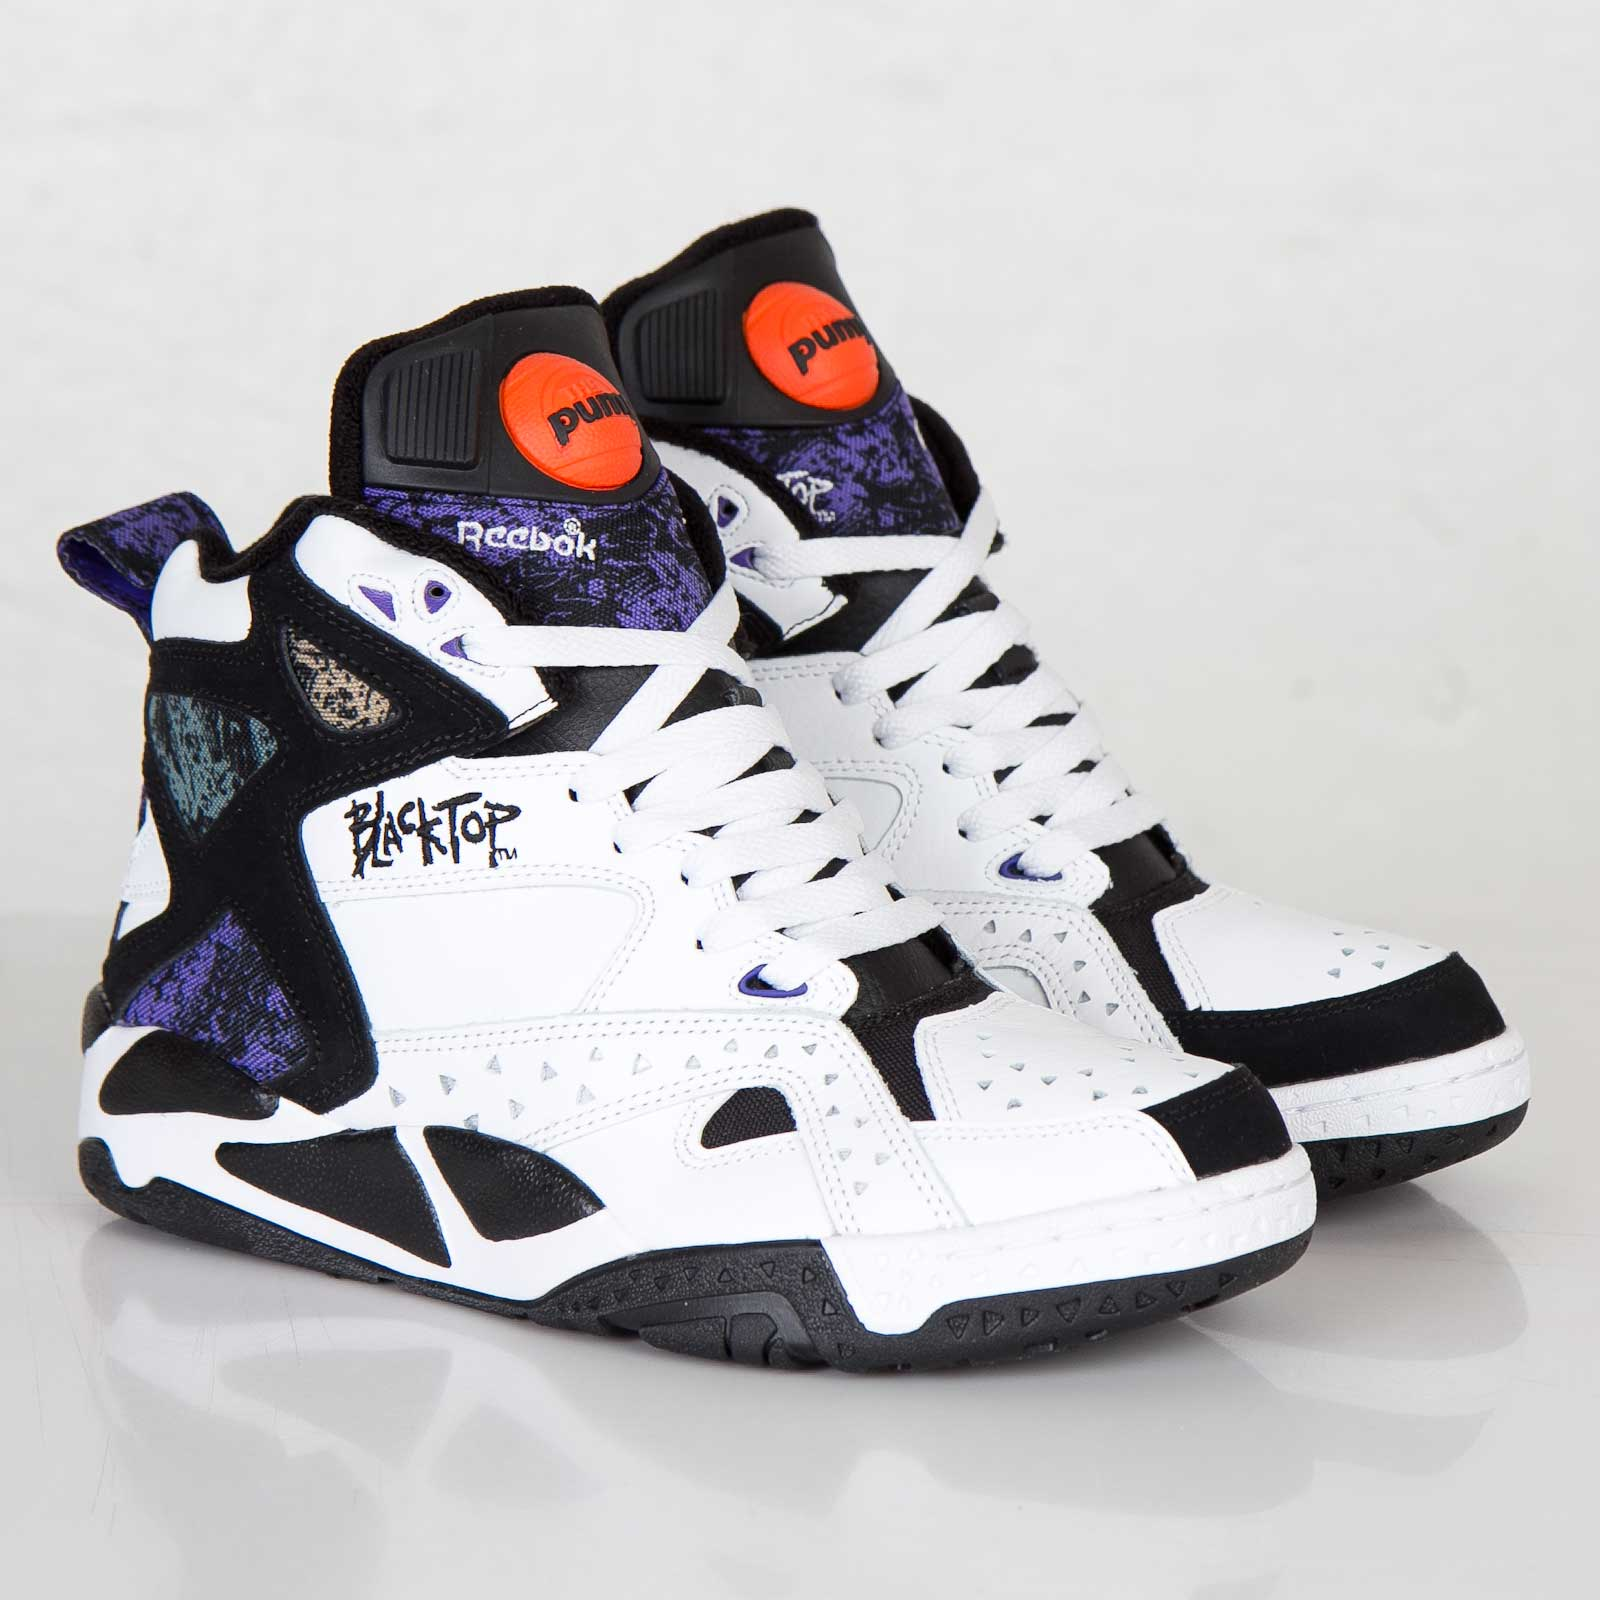 reebok blacktop battleground BLMUNXU